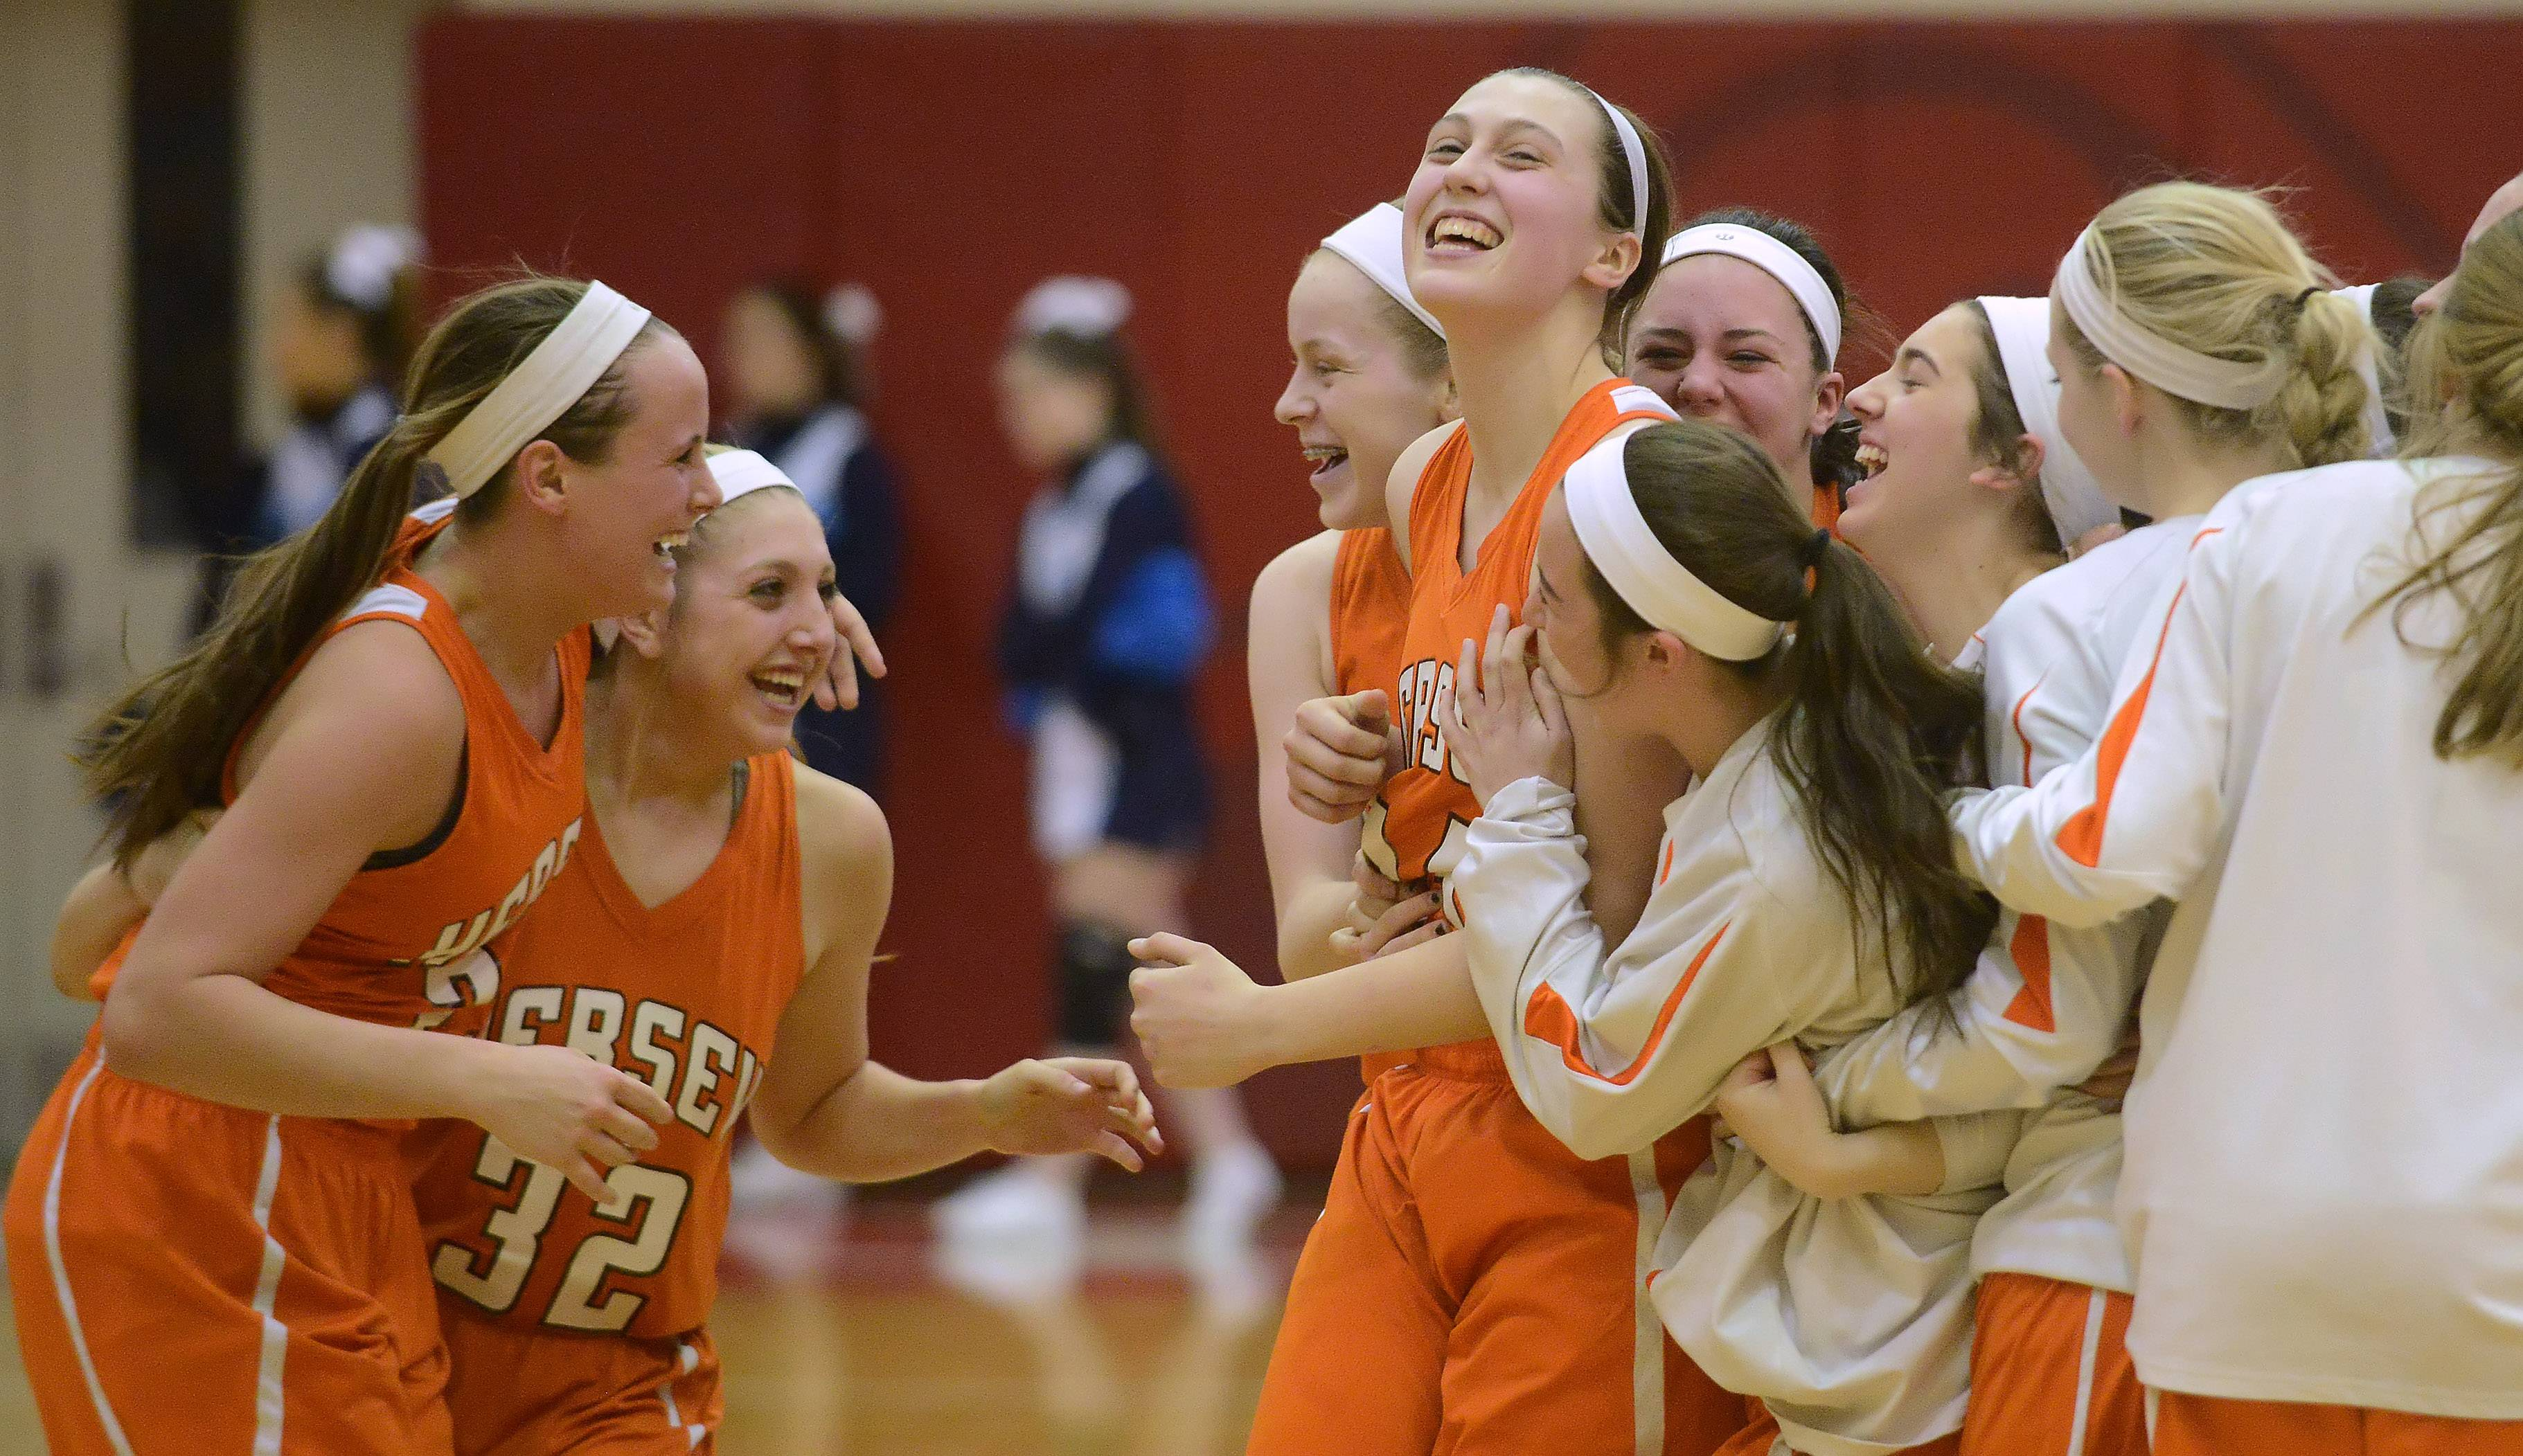 Hersey players celebrate their victory over Prospect.